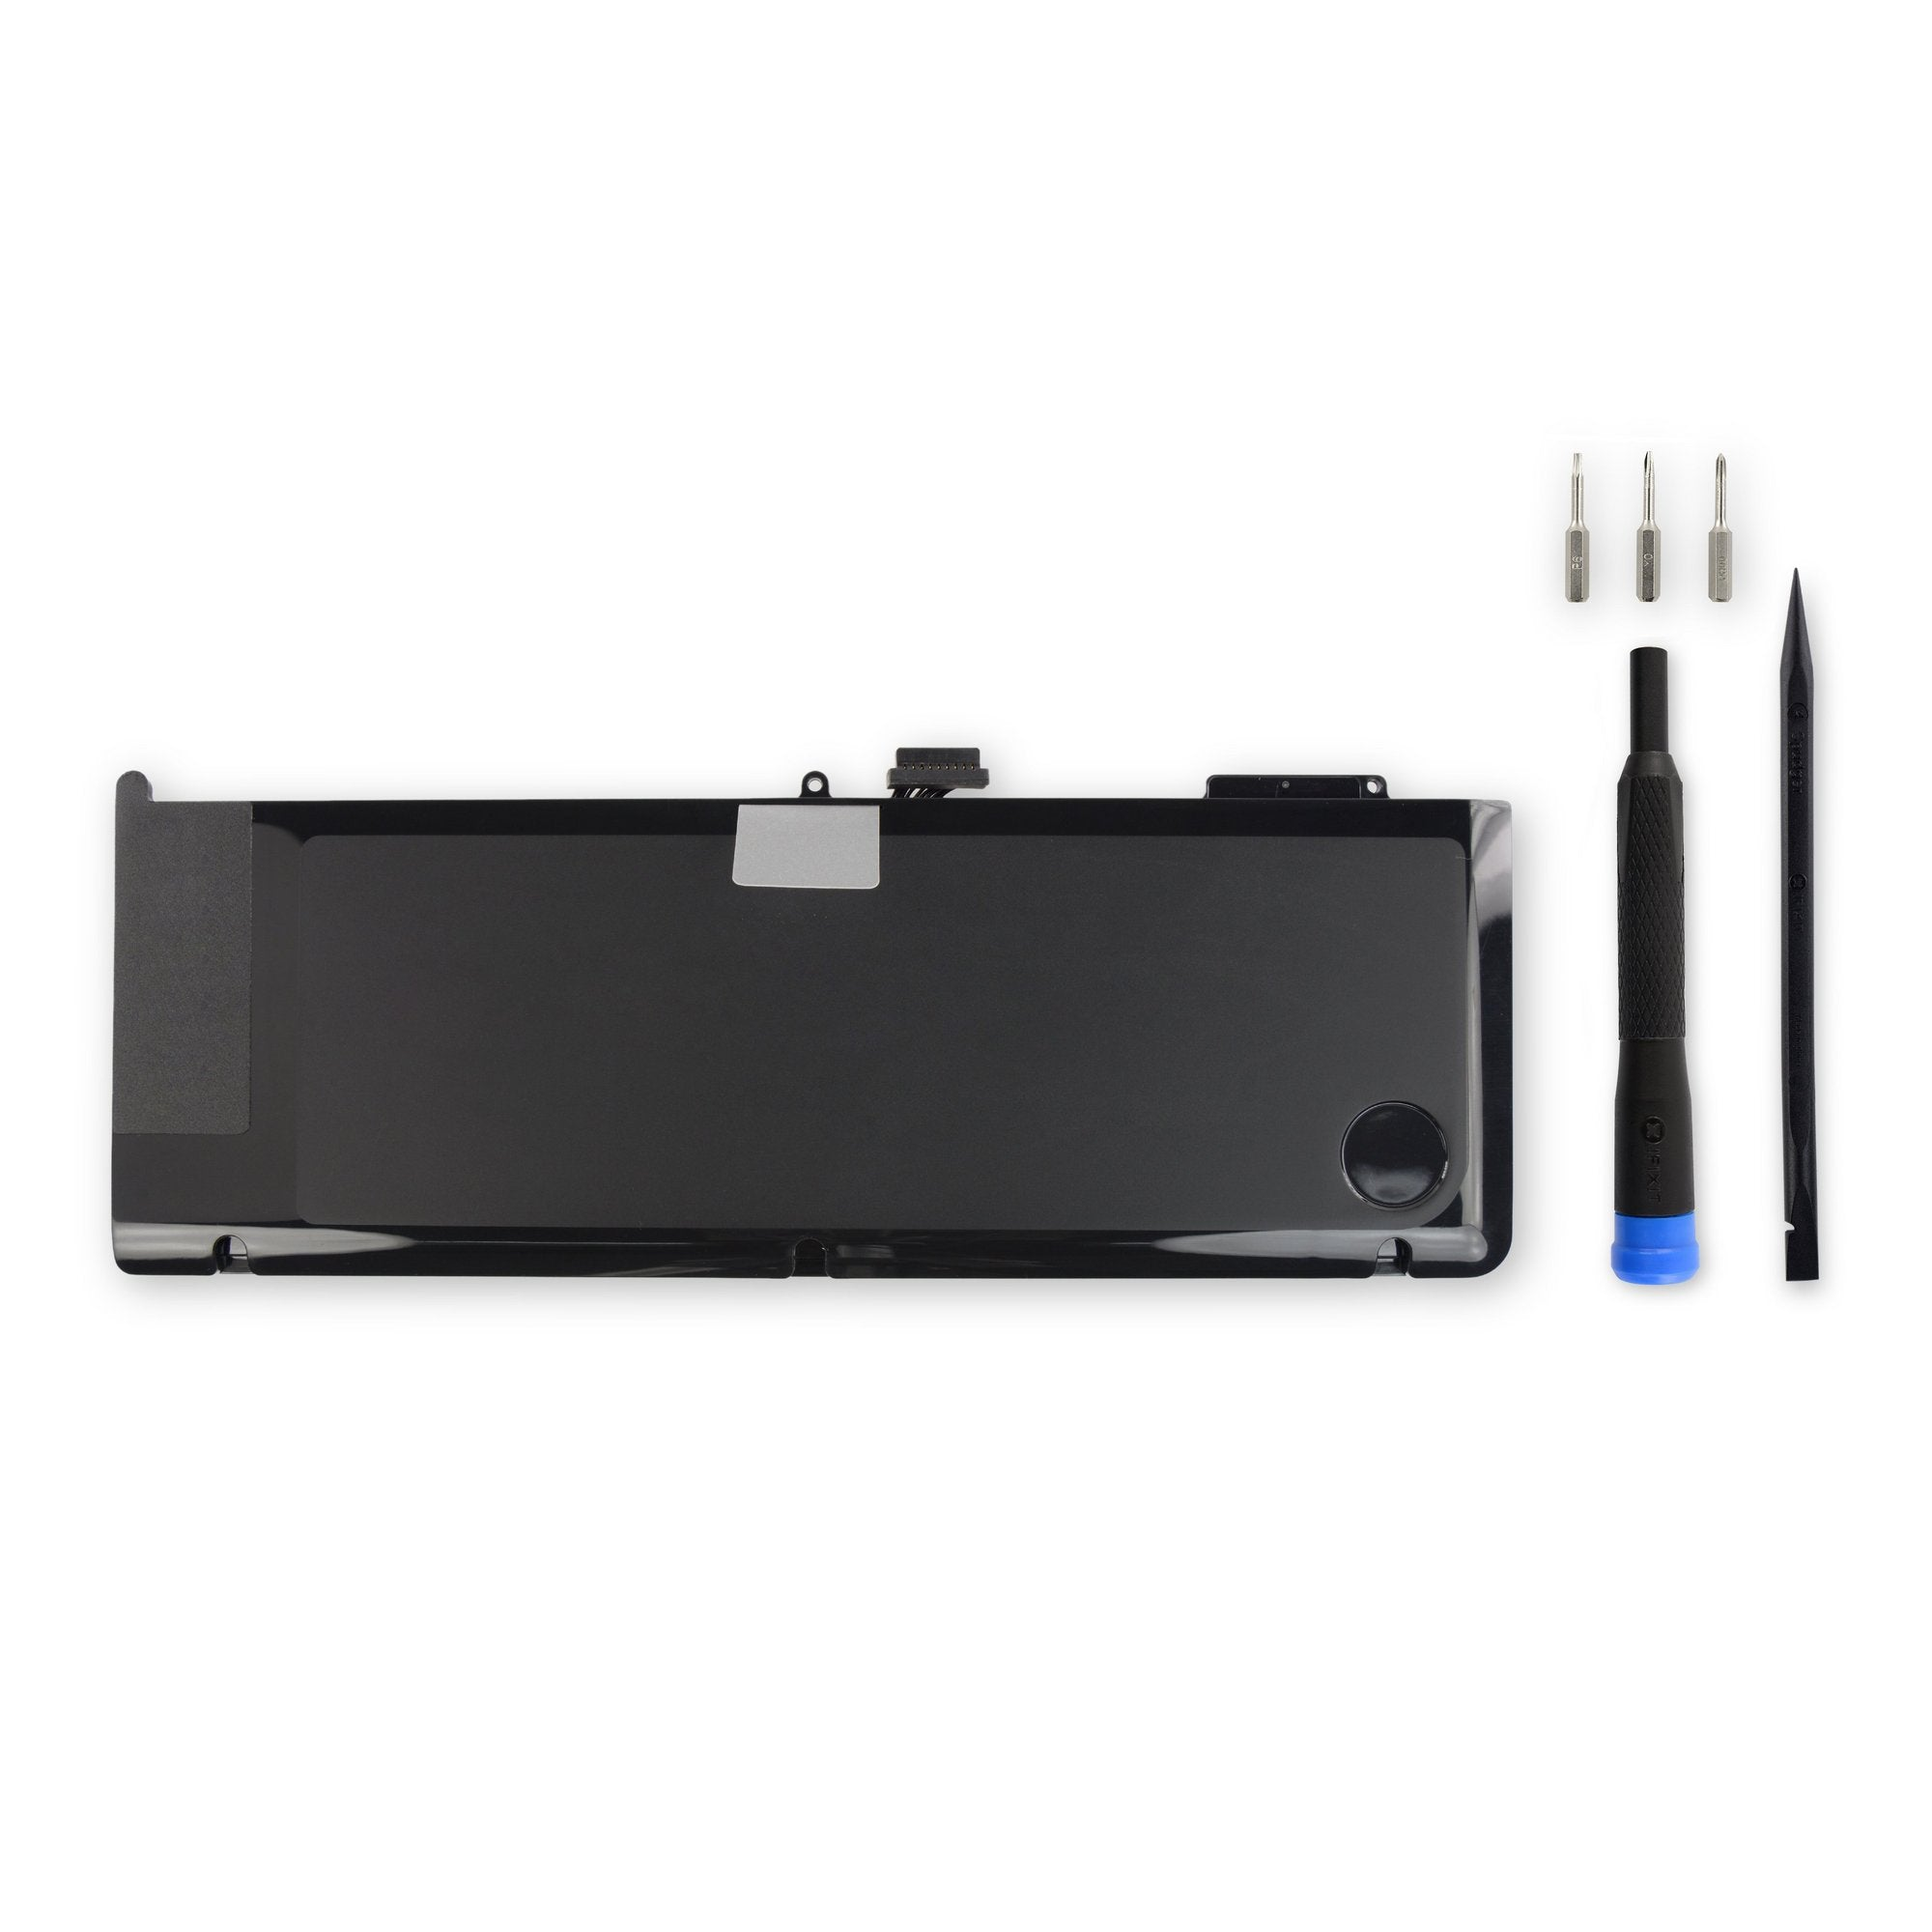 "MacBook Pro 15"" Unibody (Mid 2009-Mid 2010) Replacement Battery"